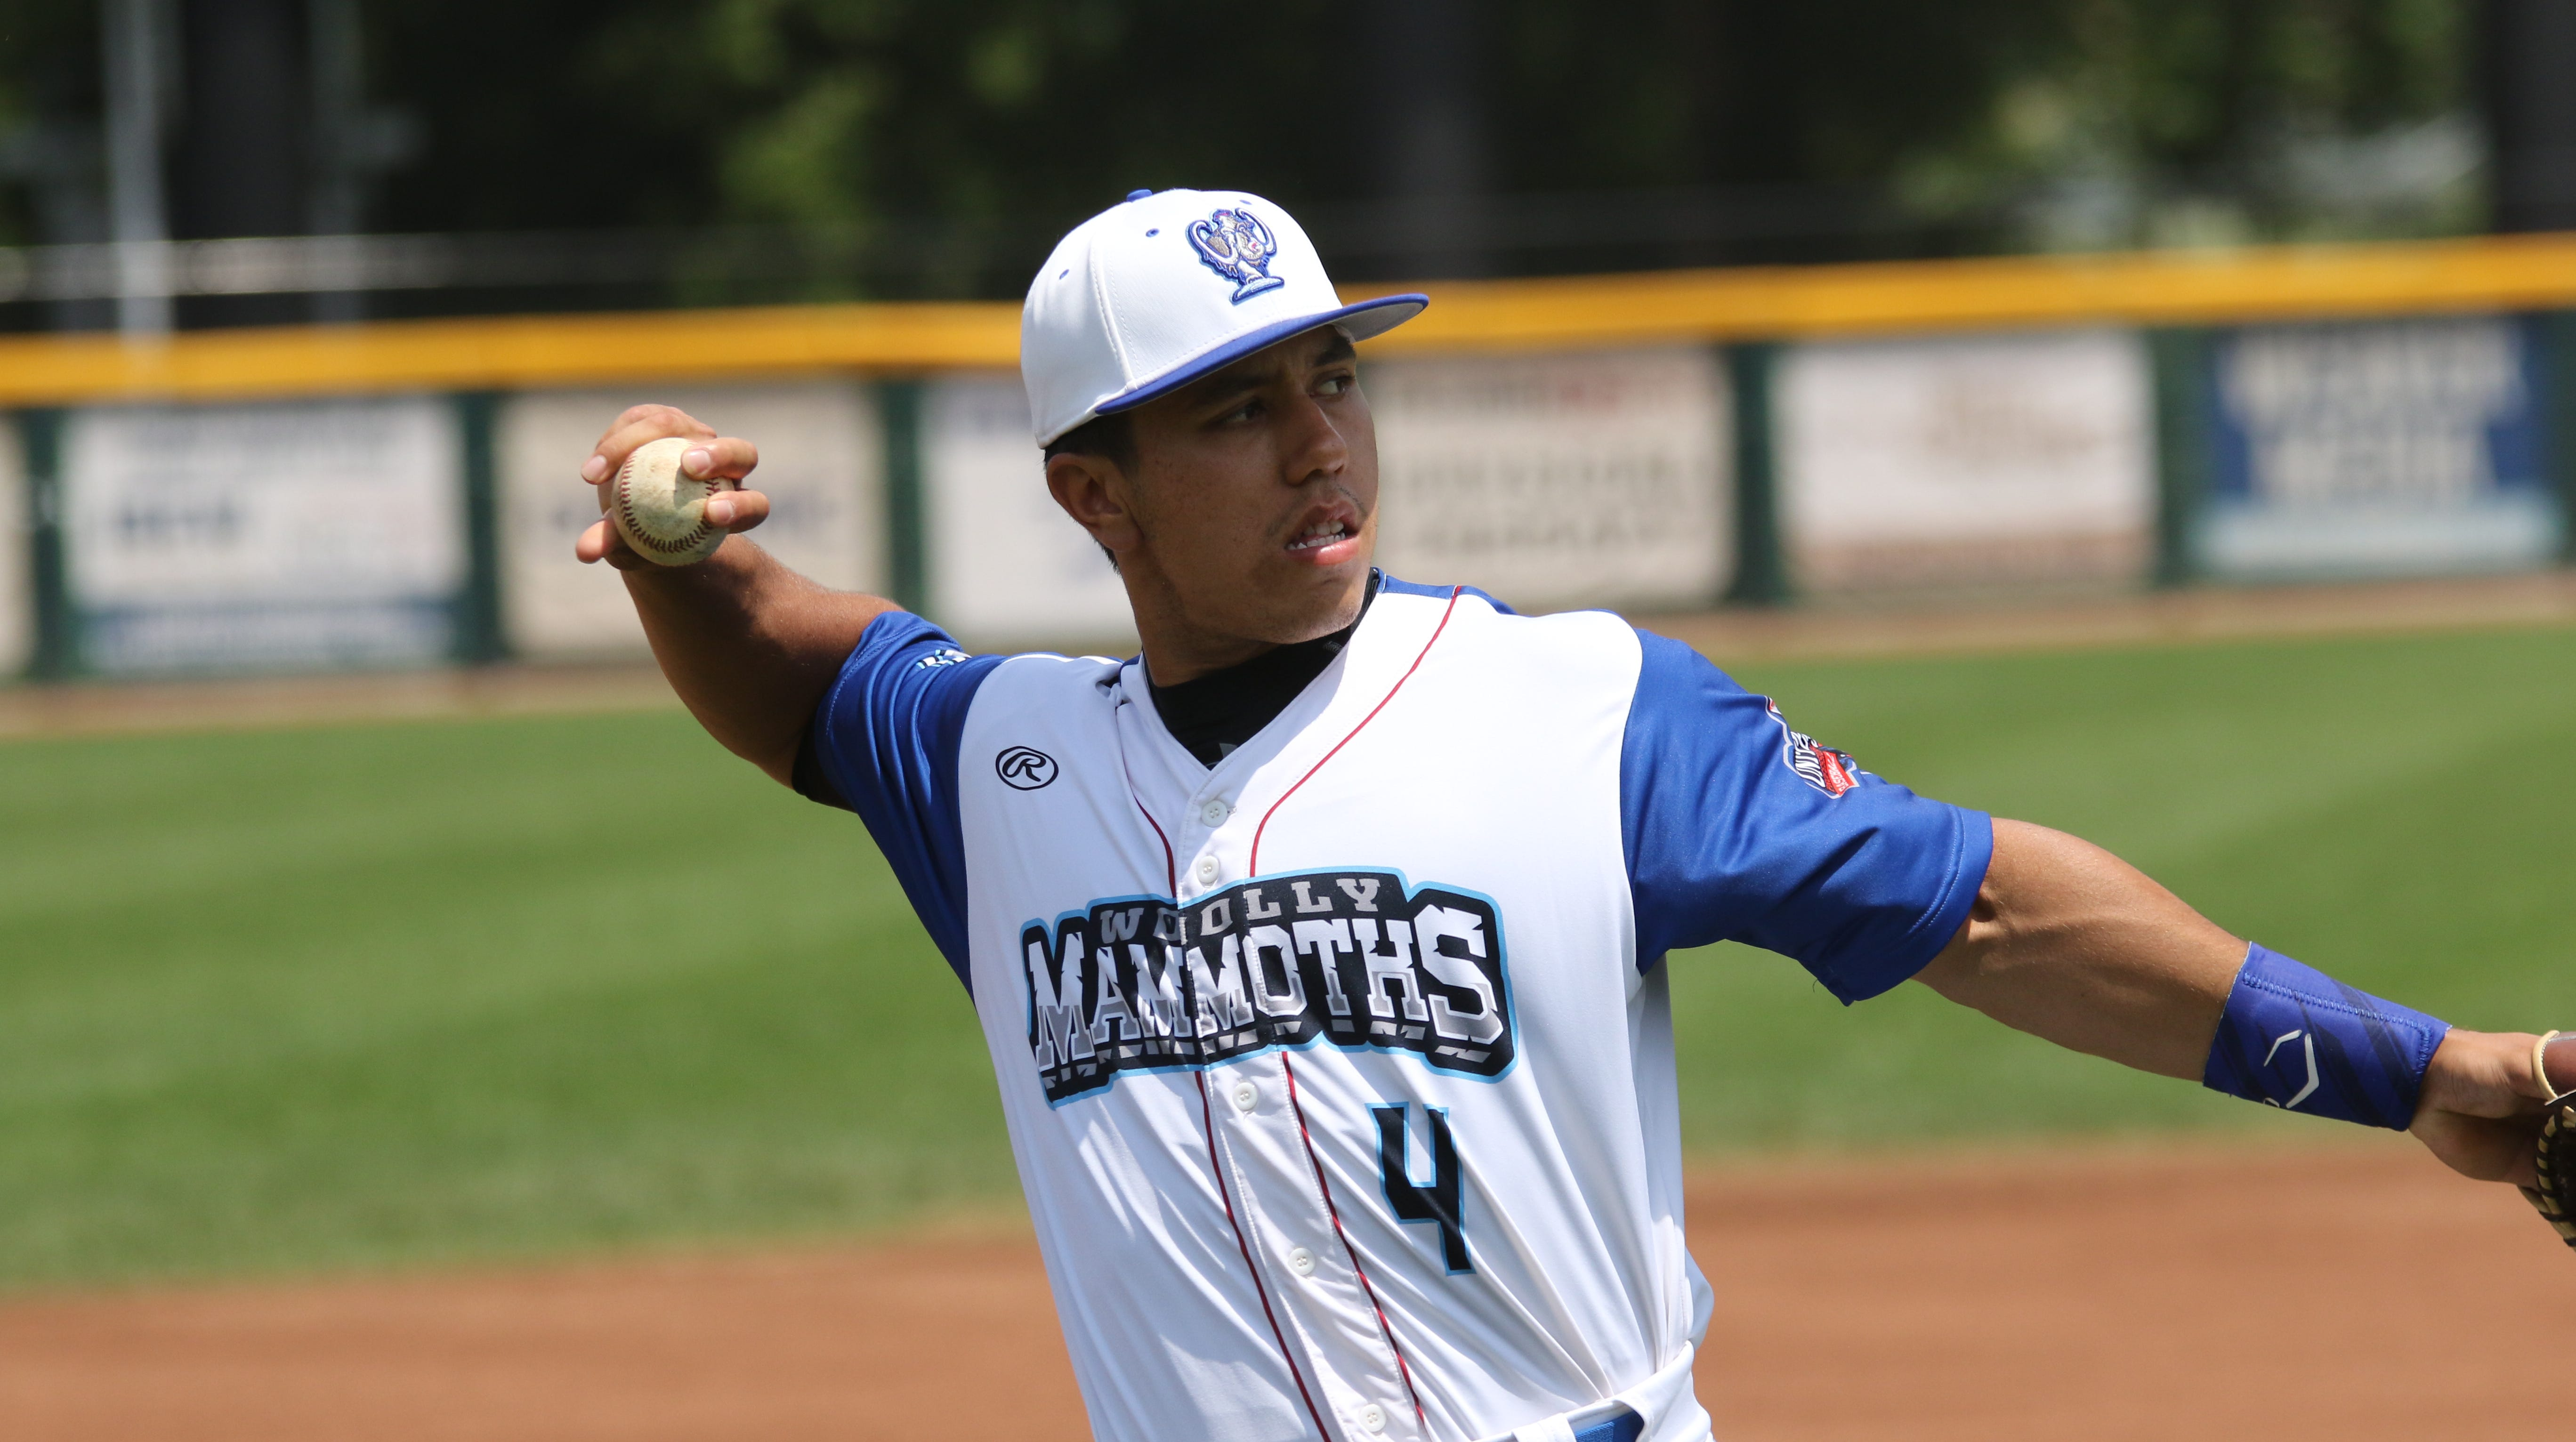 Andrew Dundon of Lincoln Park is an infielder for the Westside Woolly Mammoths.